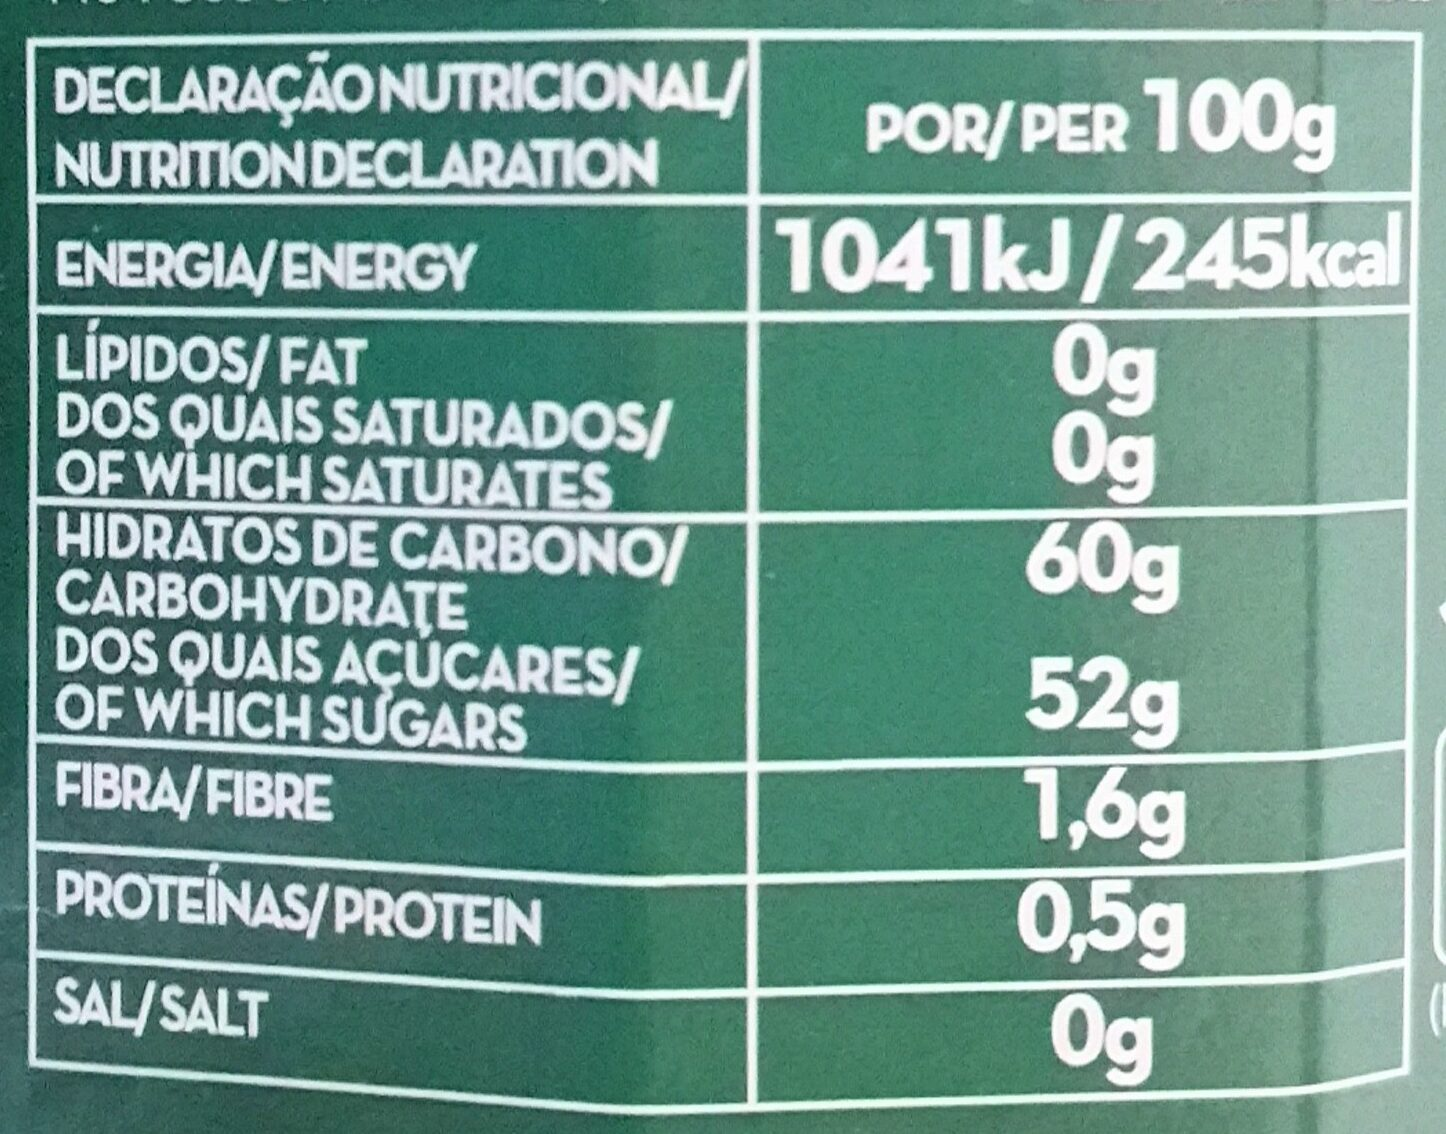 Doce extra 4 frutos vermelhos - Nutrition facts